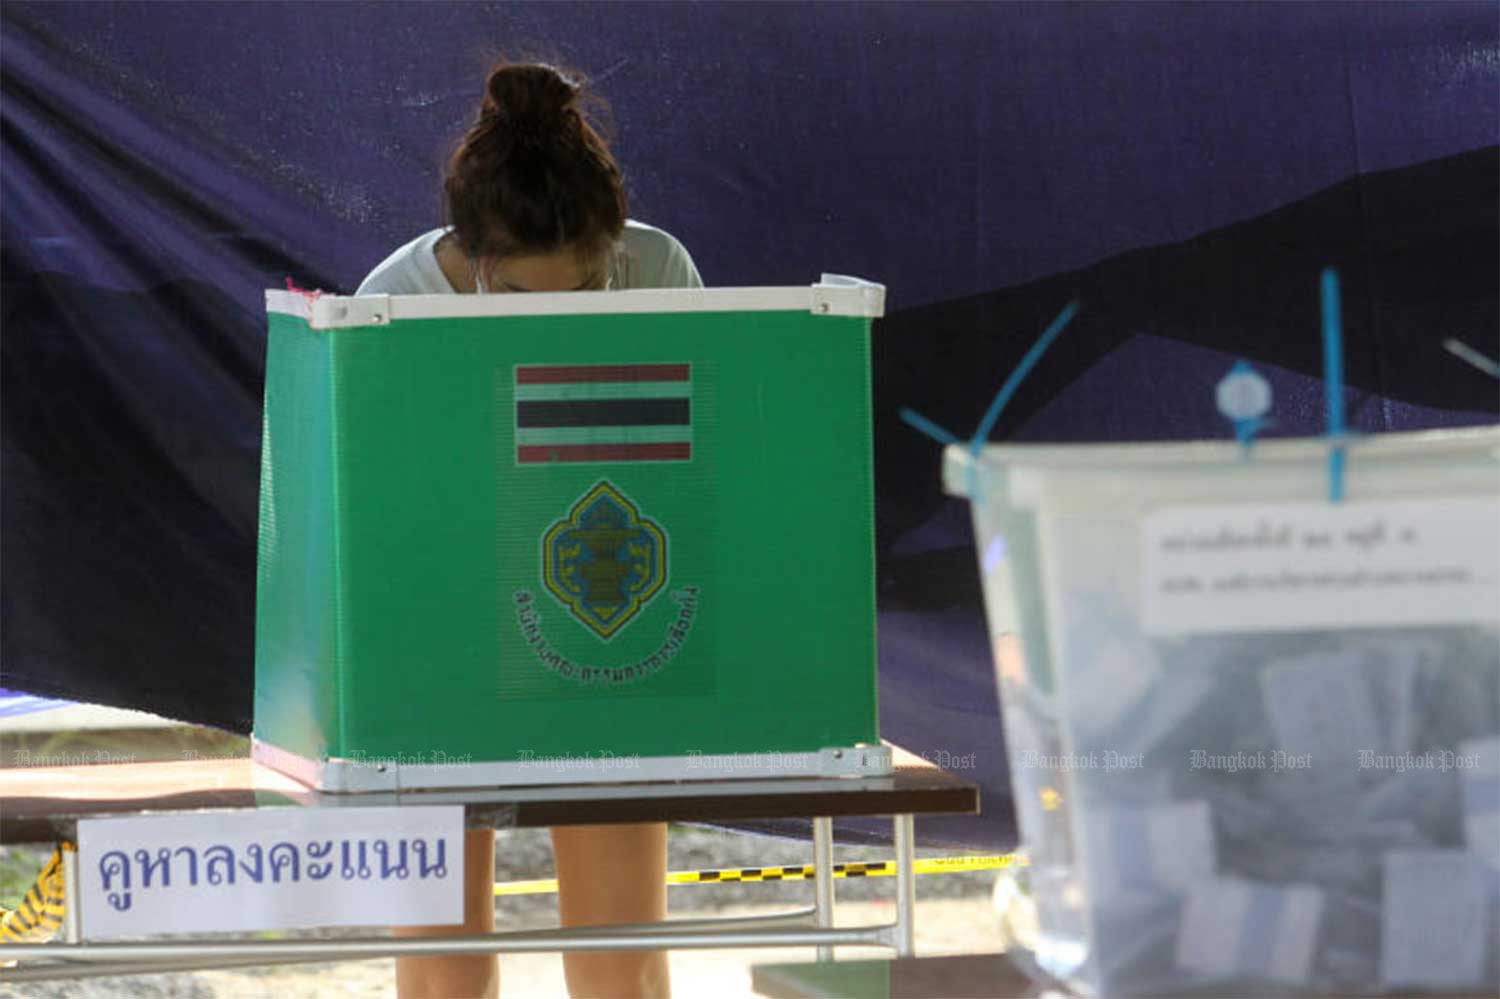 A voter casts her vote in Samut Prakan province on Aug 9. (File photo Wichan Charoenkiatpakul)